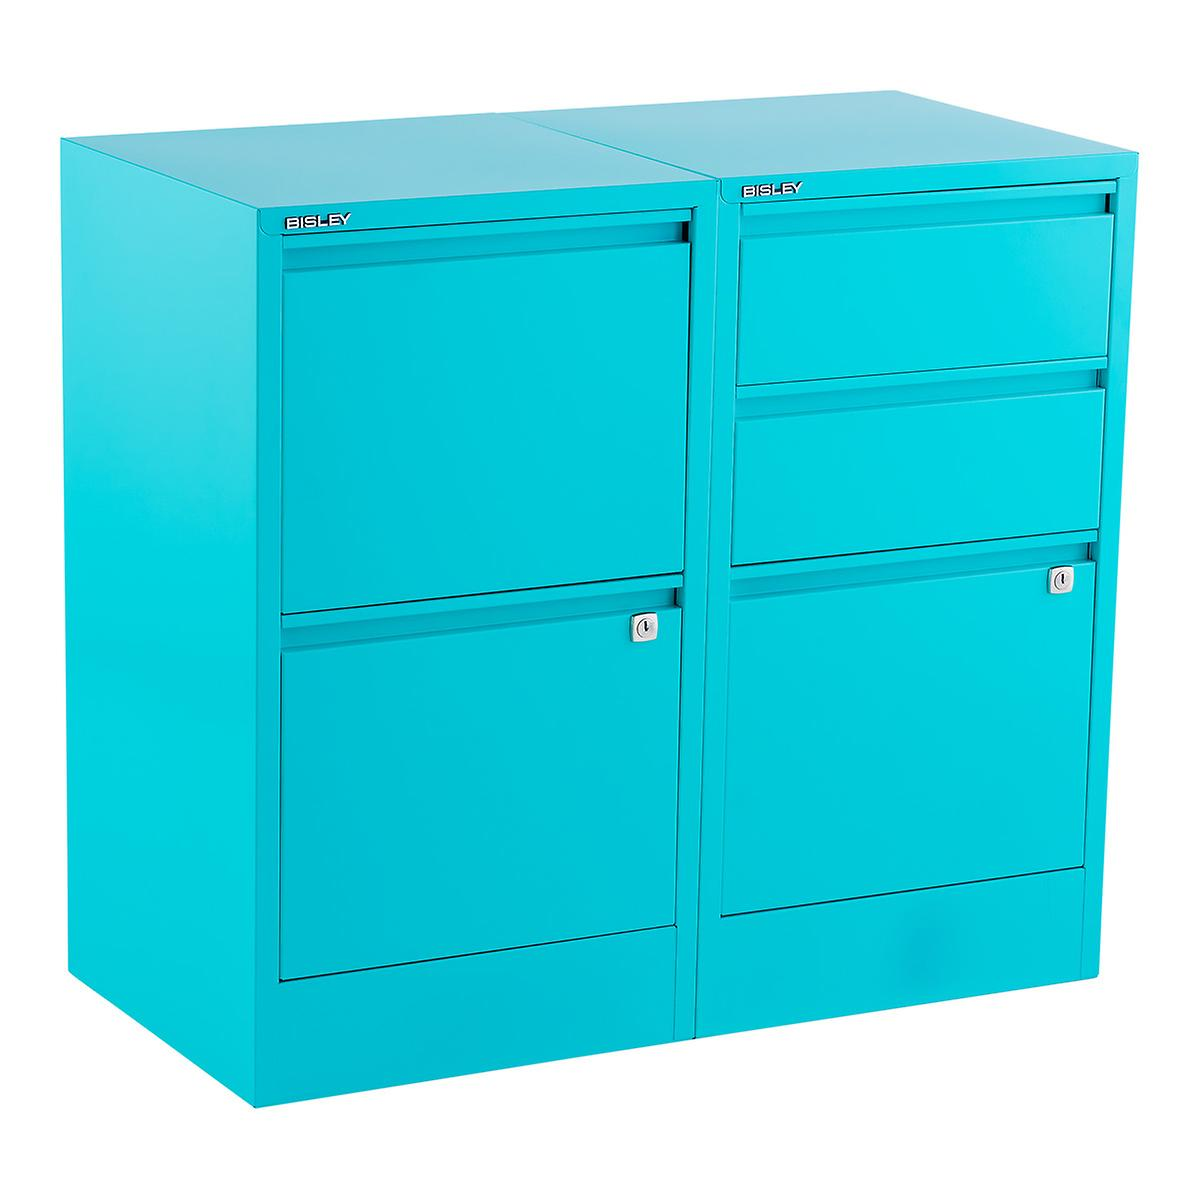 bisley aqua 2- & 3-drawer locking filing cabinets | the container